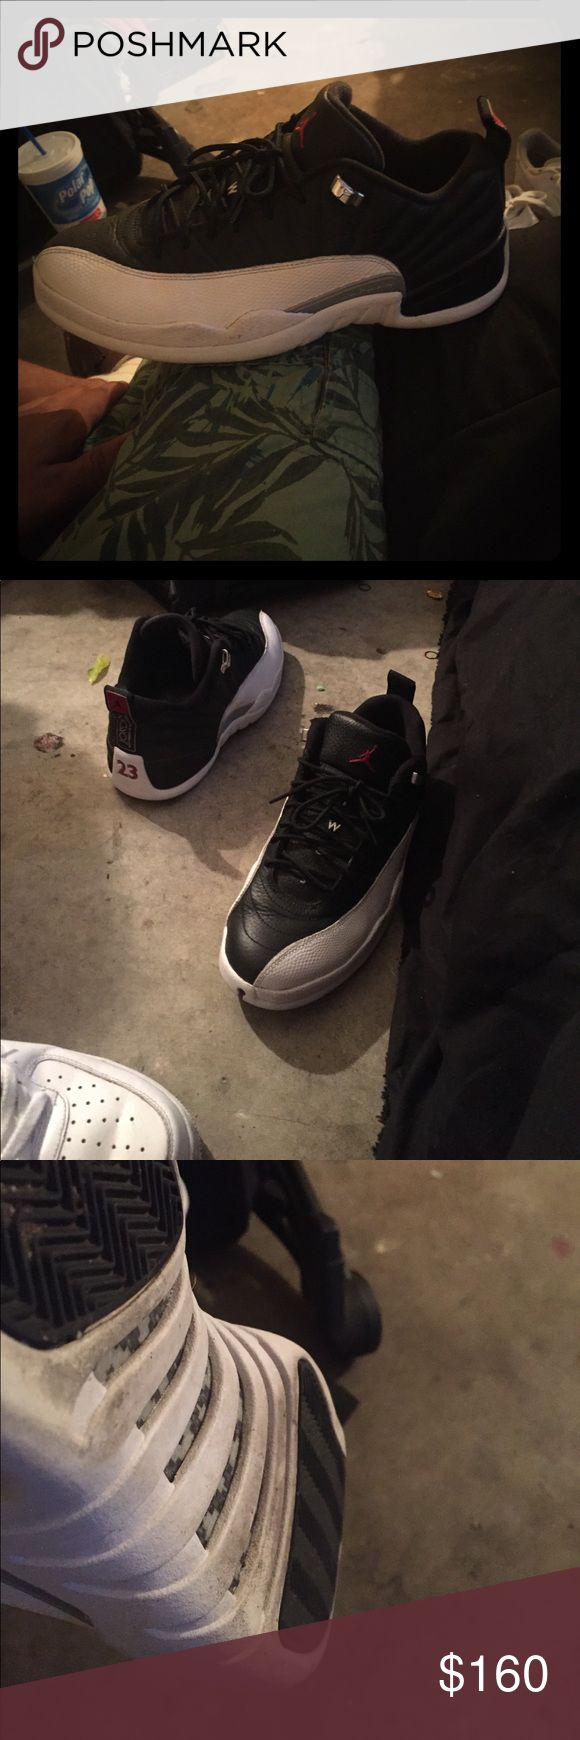 Jordan low 12s Just recently paid for them Jordan Shoes Sneakers